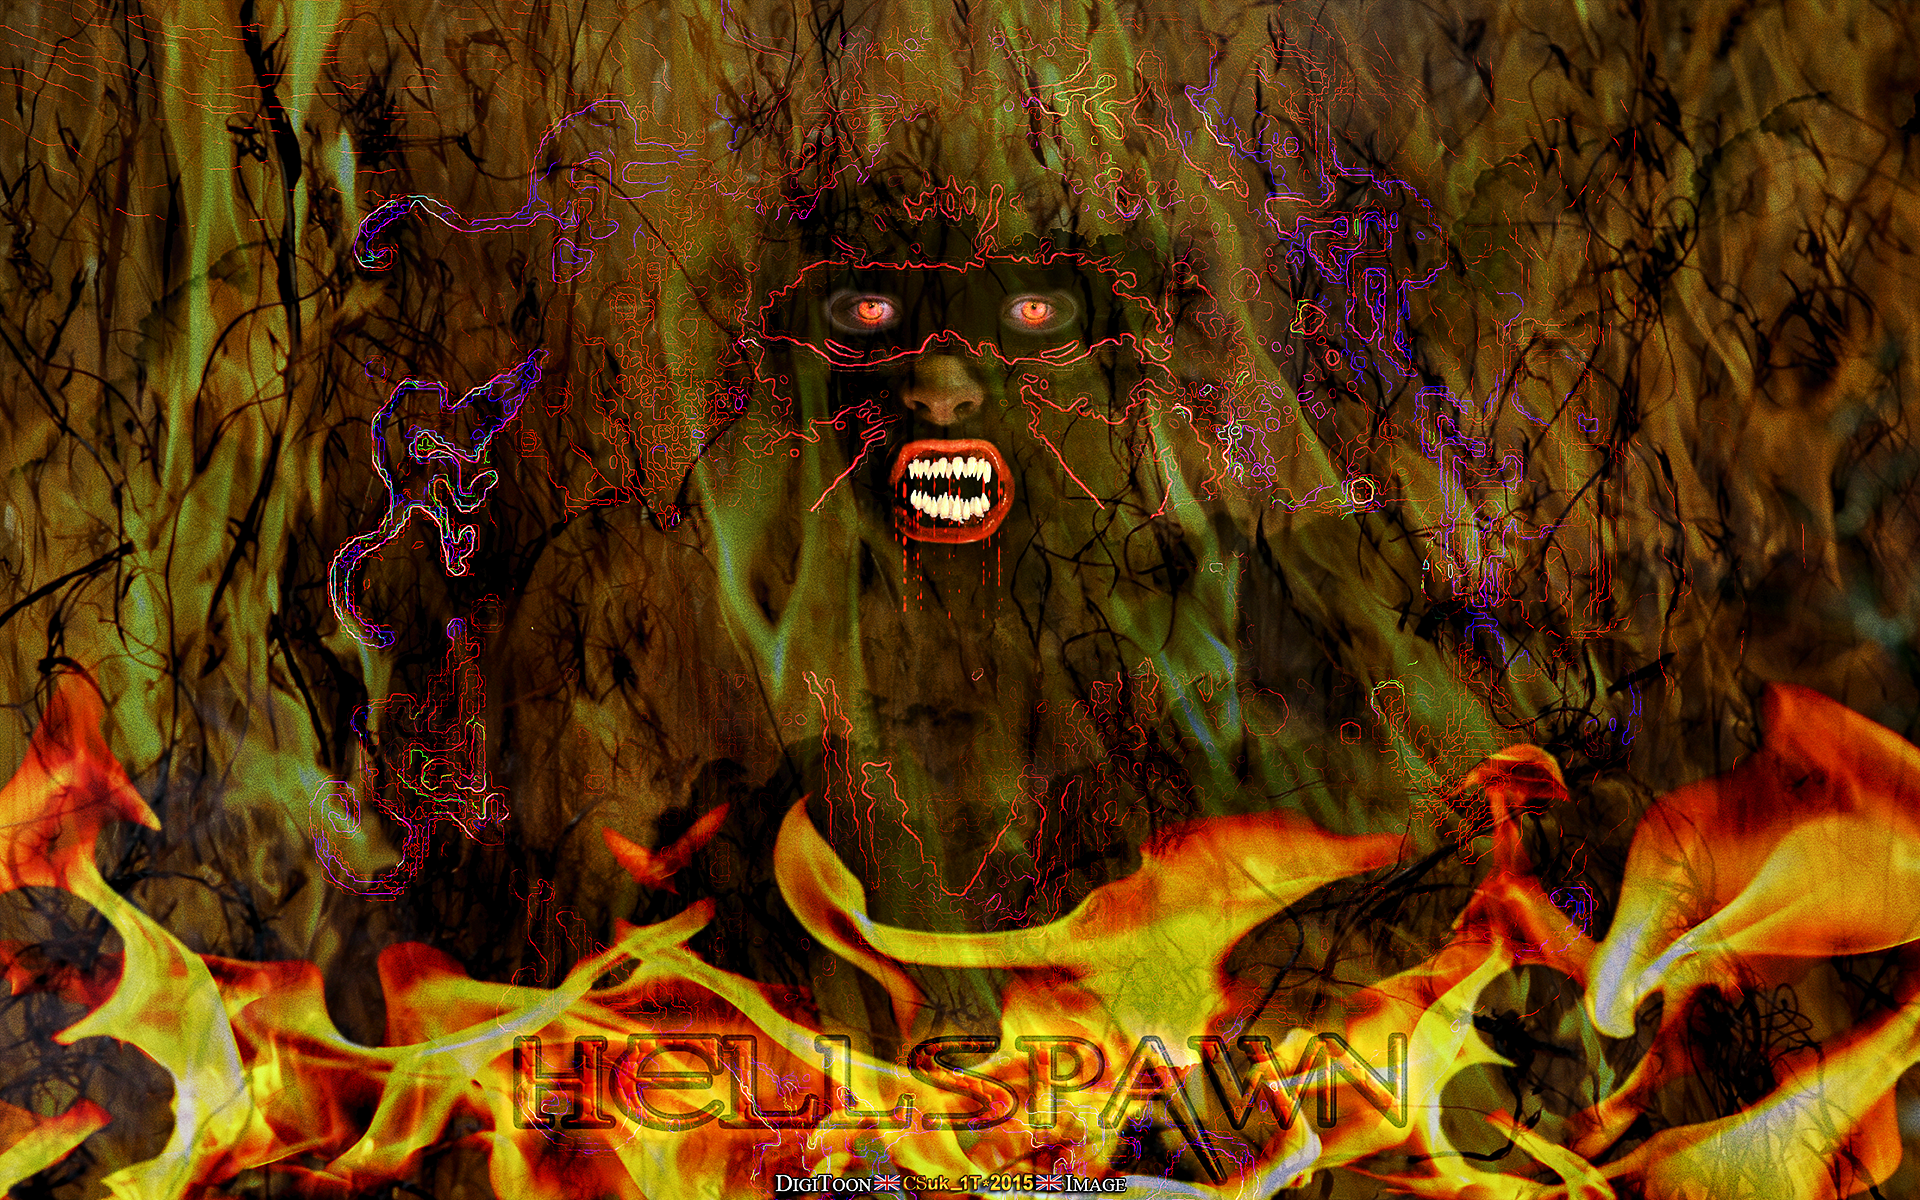 HELLSPAWN HORROR ABSTRACT By CSuk 1T